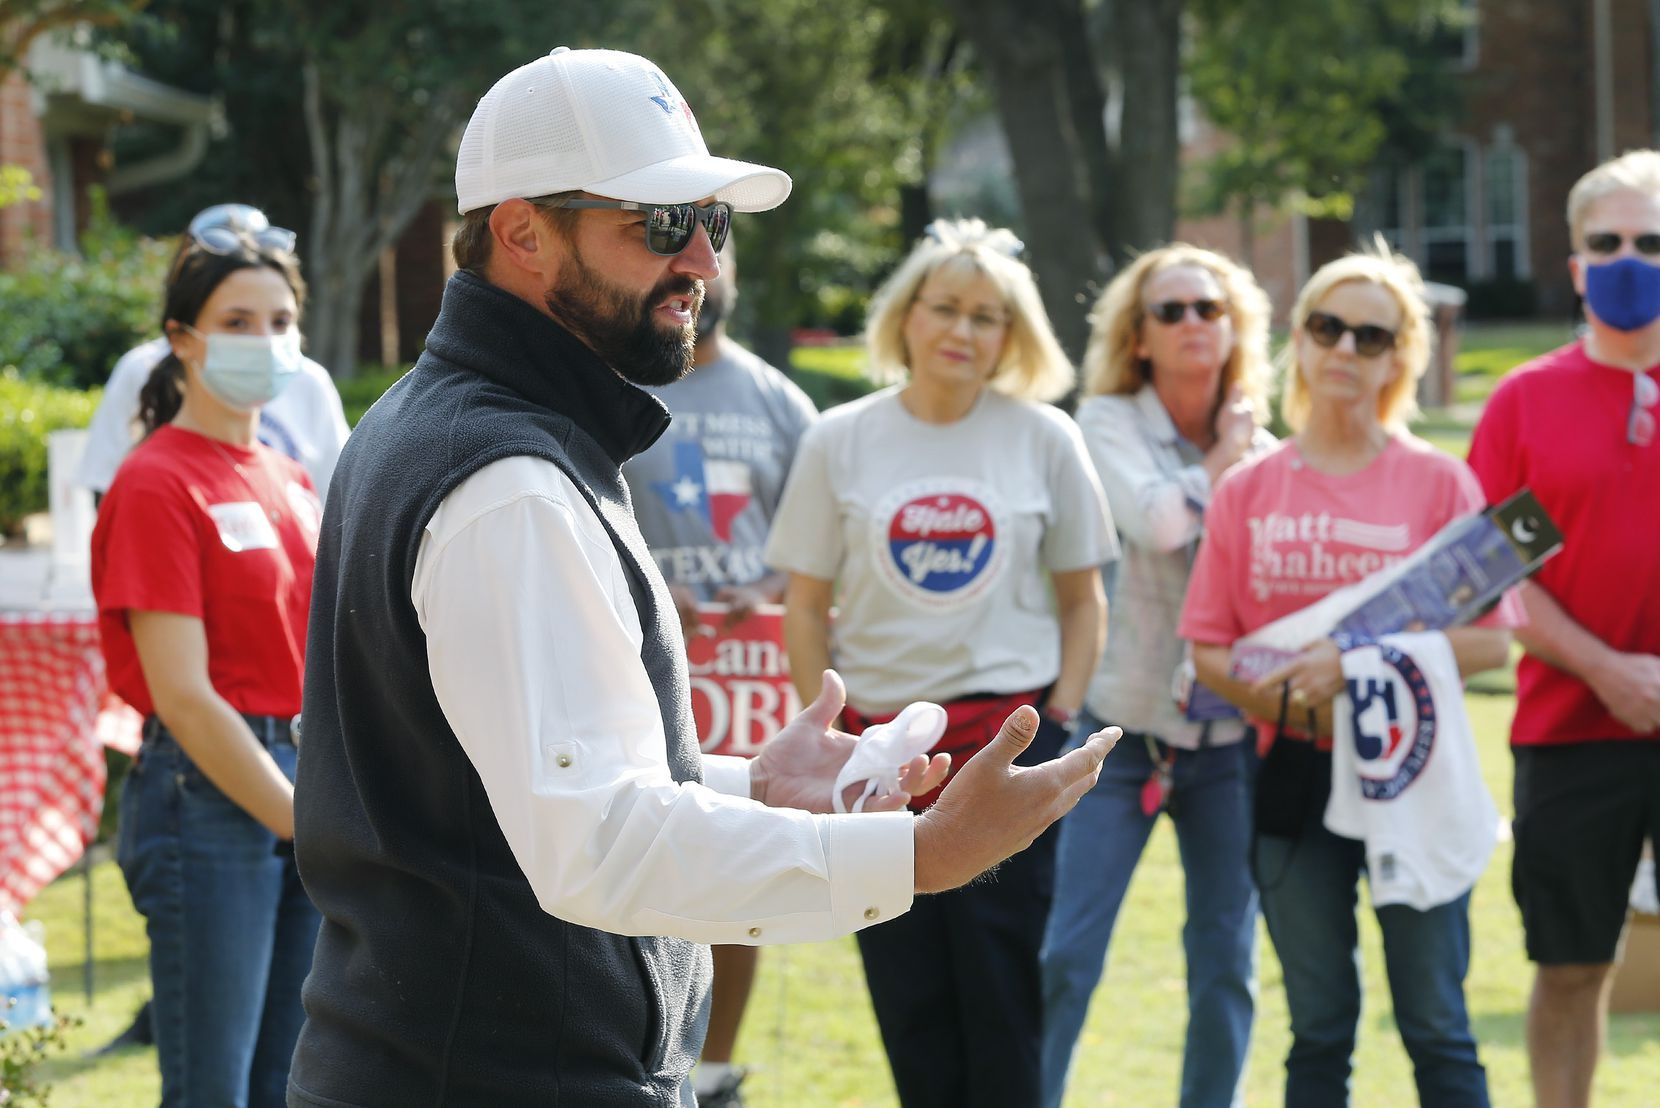 State Rep. Jeff Leach speaks to volunteers before a door-knocking campaign in Plano.